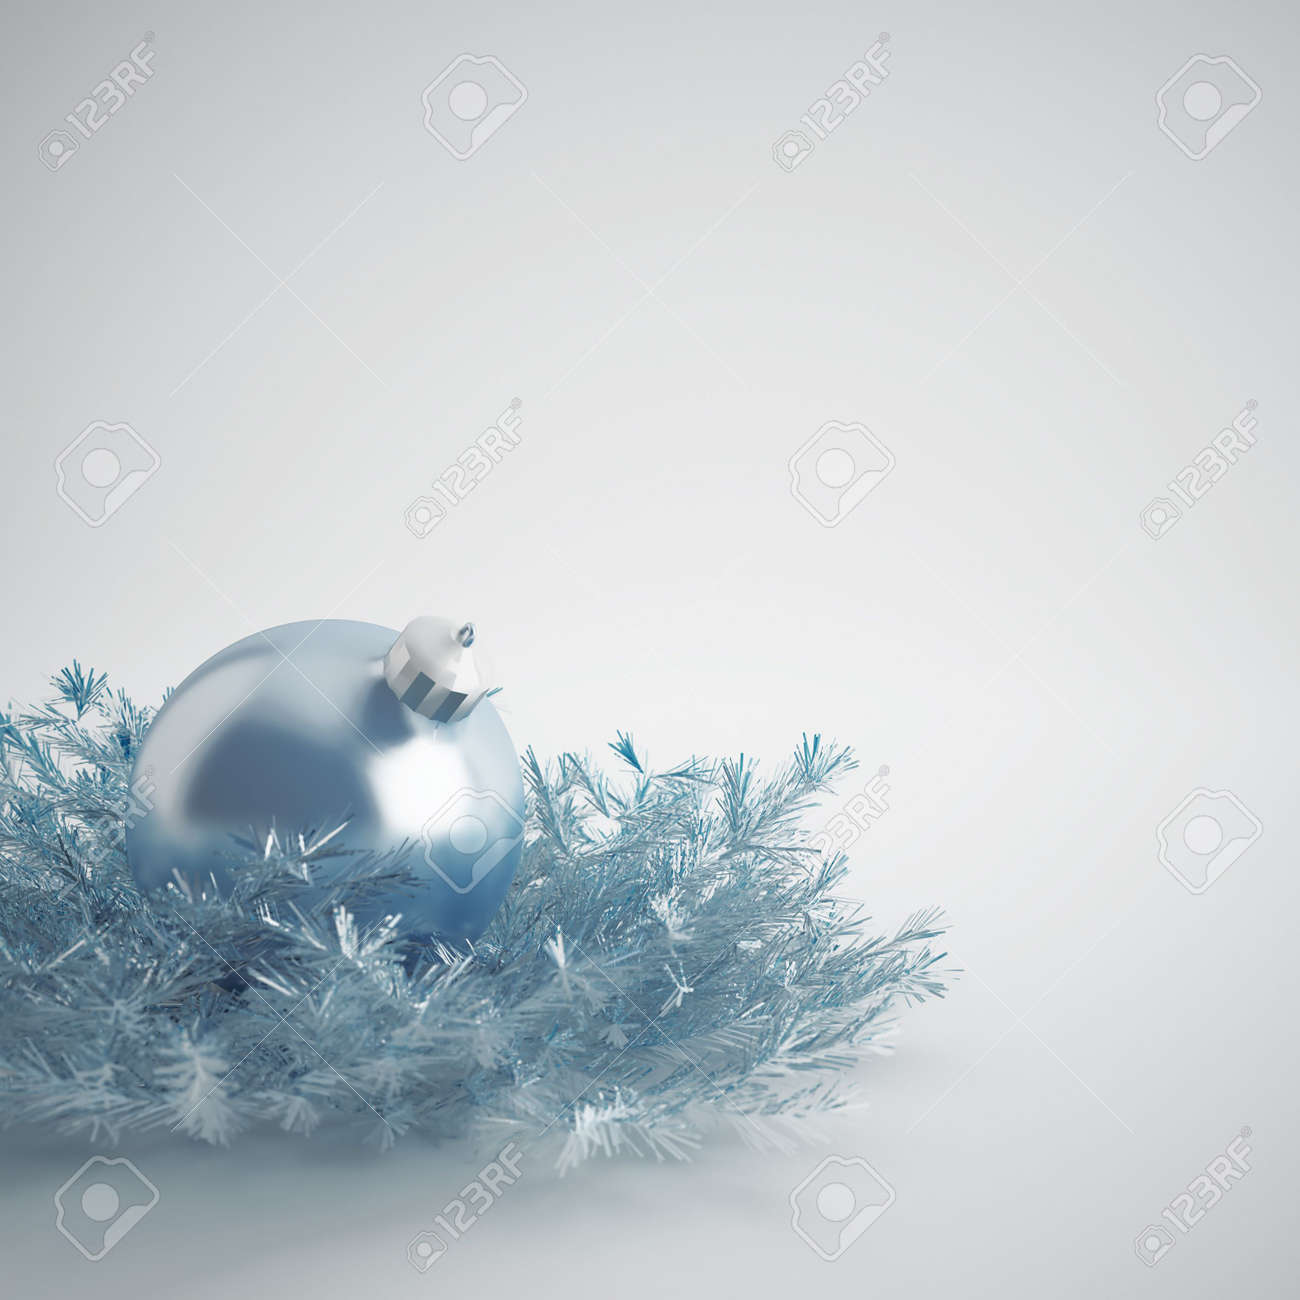 Christmas ball of gentle blue color in an environment of a tinsels and decorations Stock Photo - 5729116